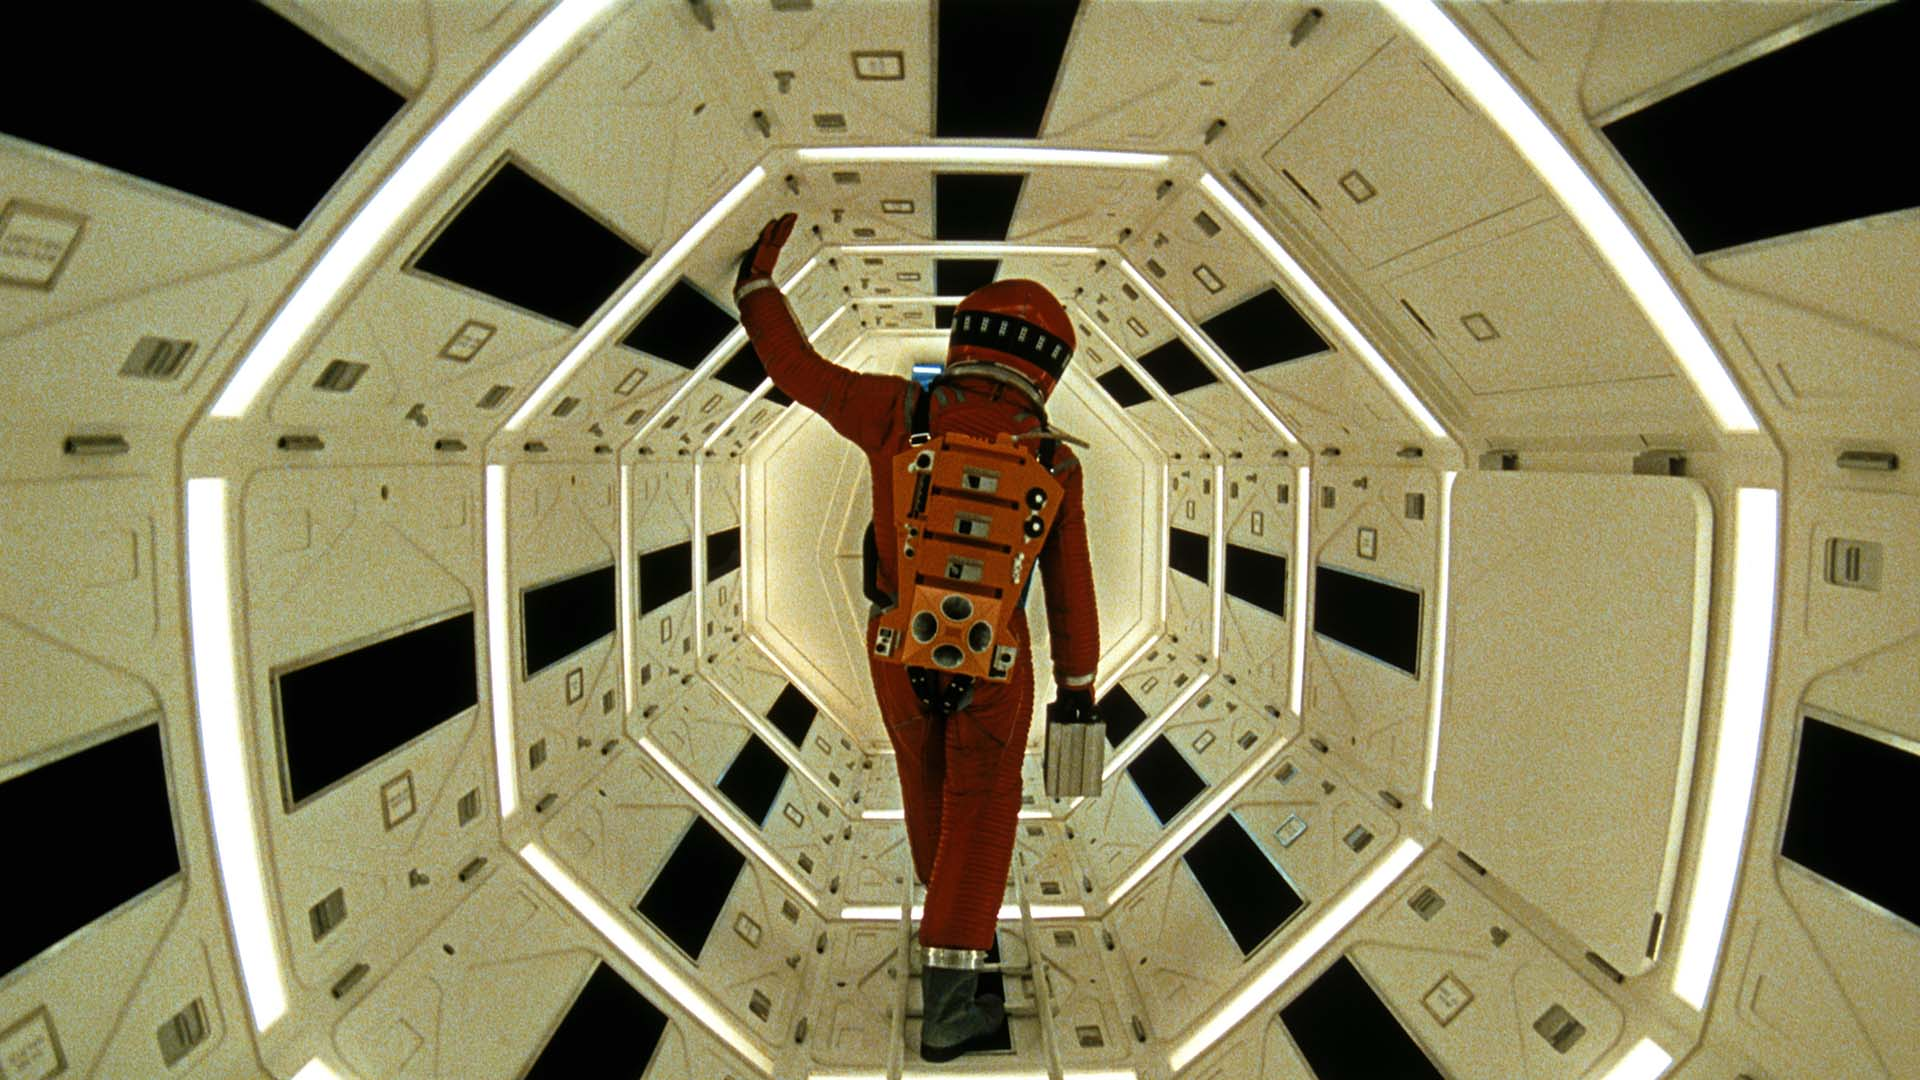 '2001: A Space Odyssey' Live in Concert with the MSO